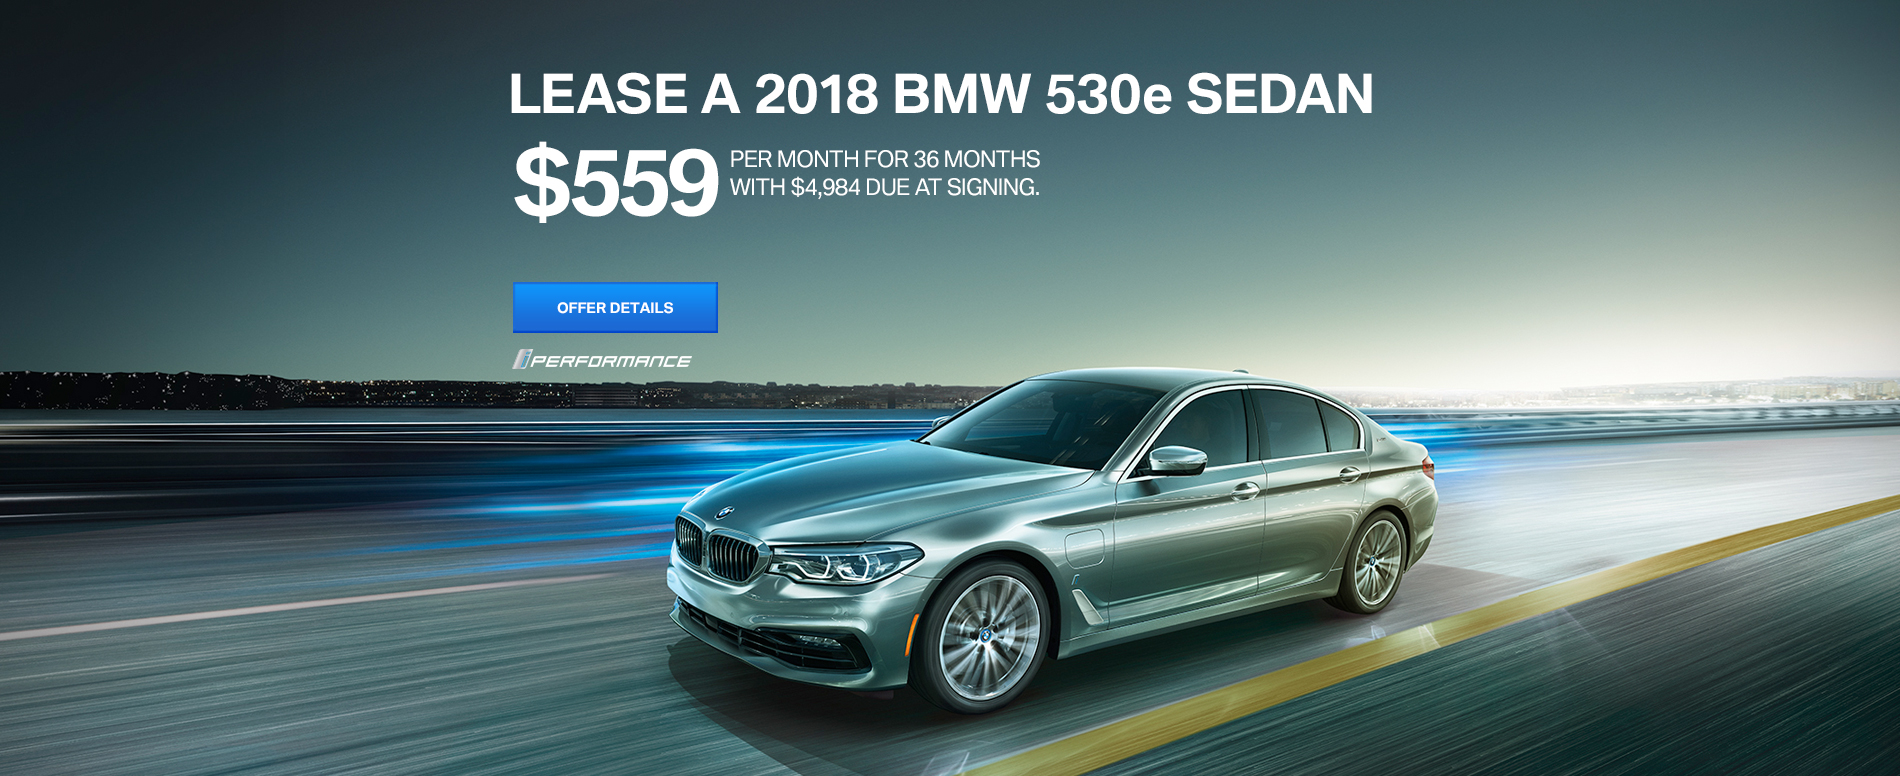 LEASE A 2018 530e iPERFORMANCE SEDAN FOR $559/MO FOR 36 MONTHS,